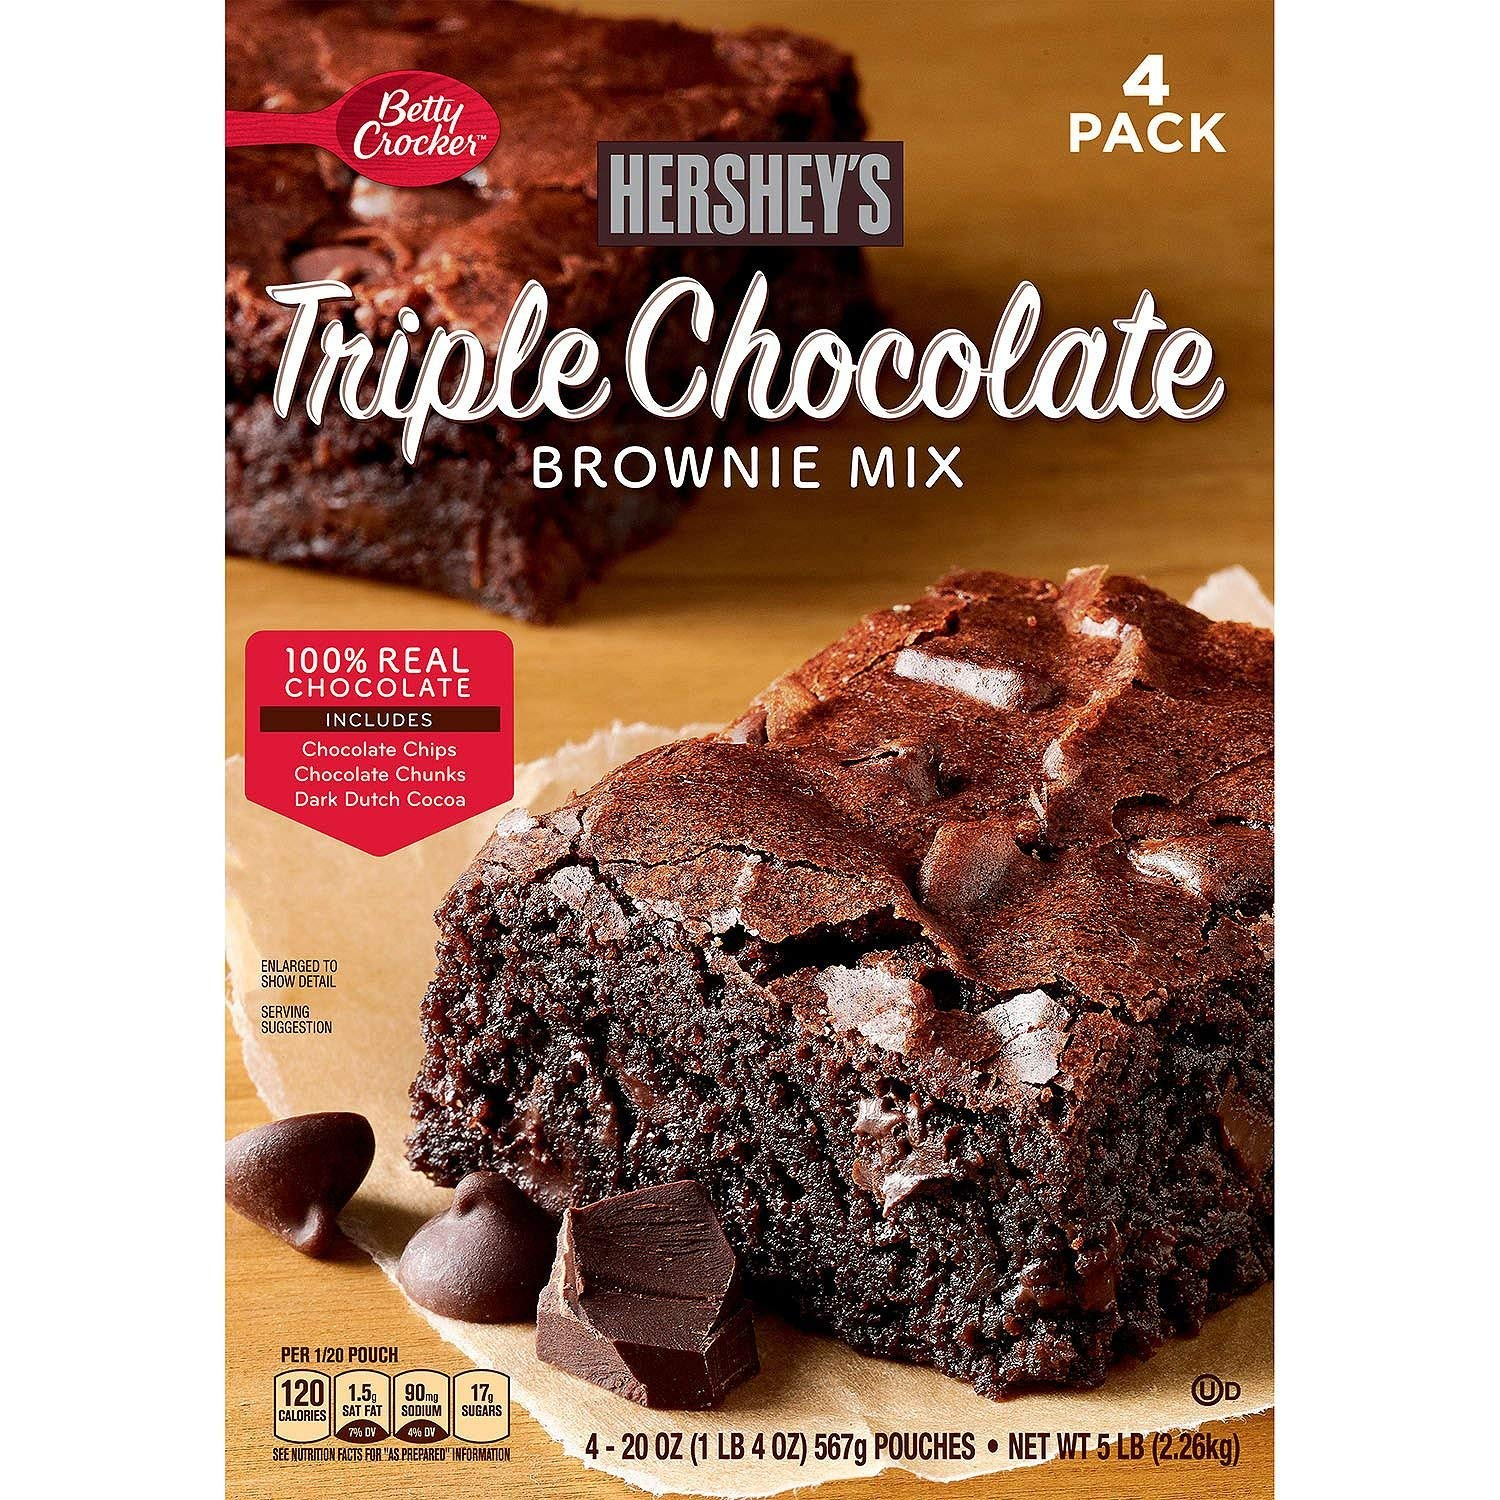 Betty Crocker Hershey's Triple Chocolate Brownie Mix